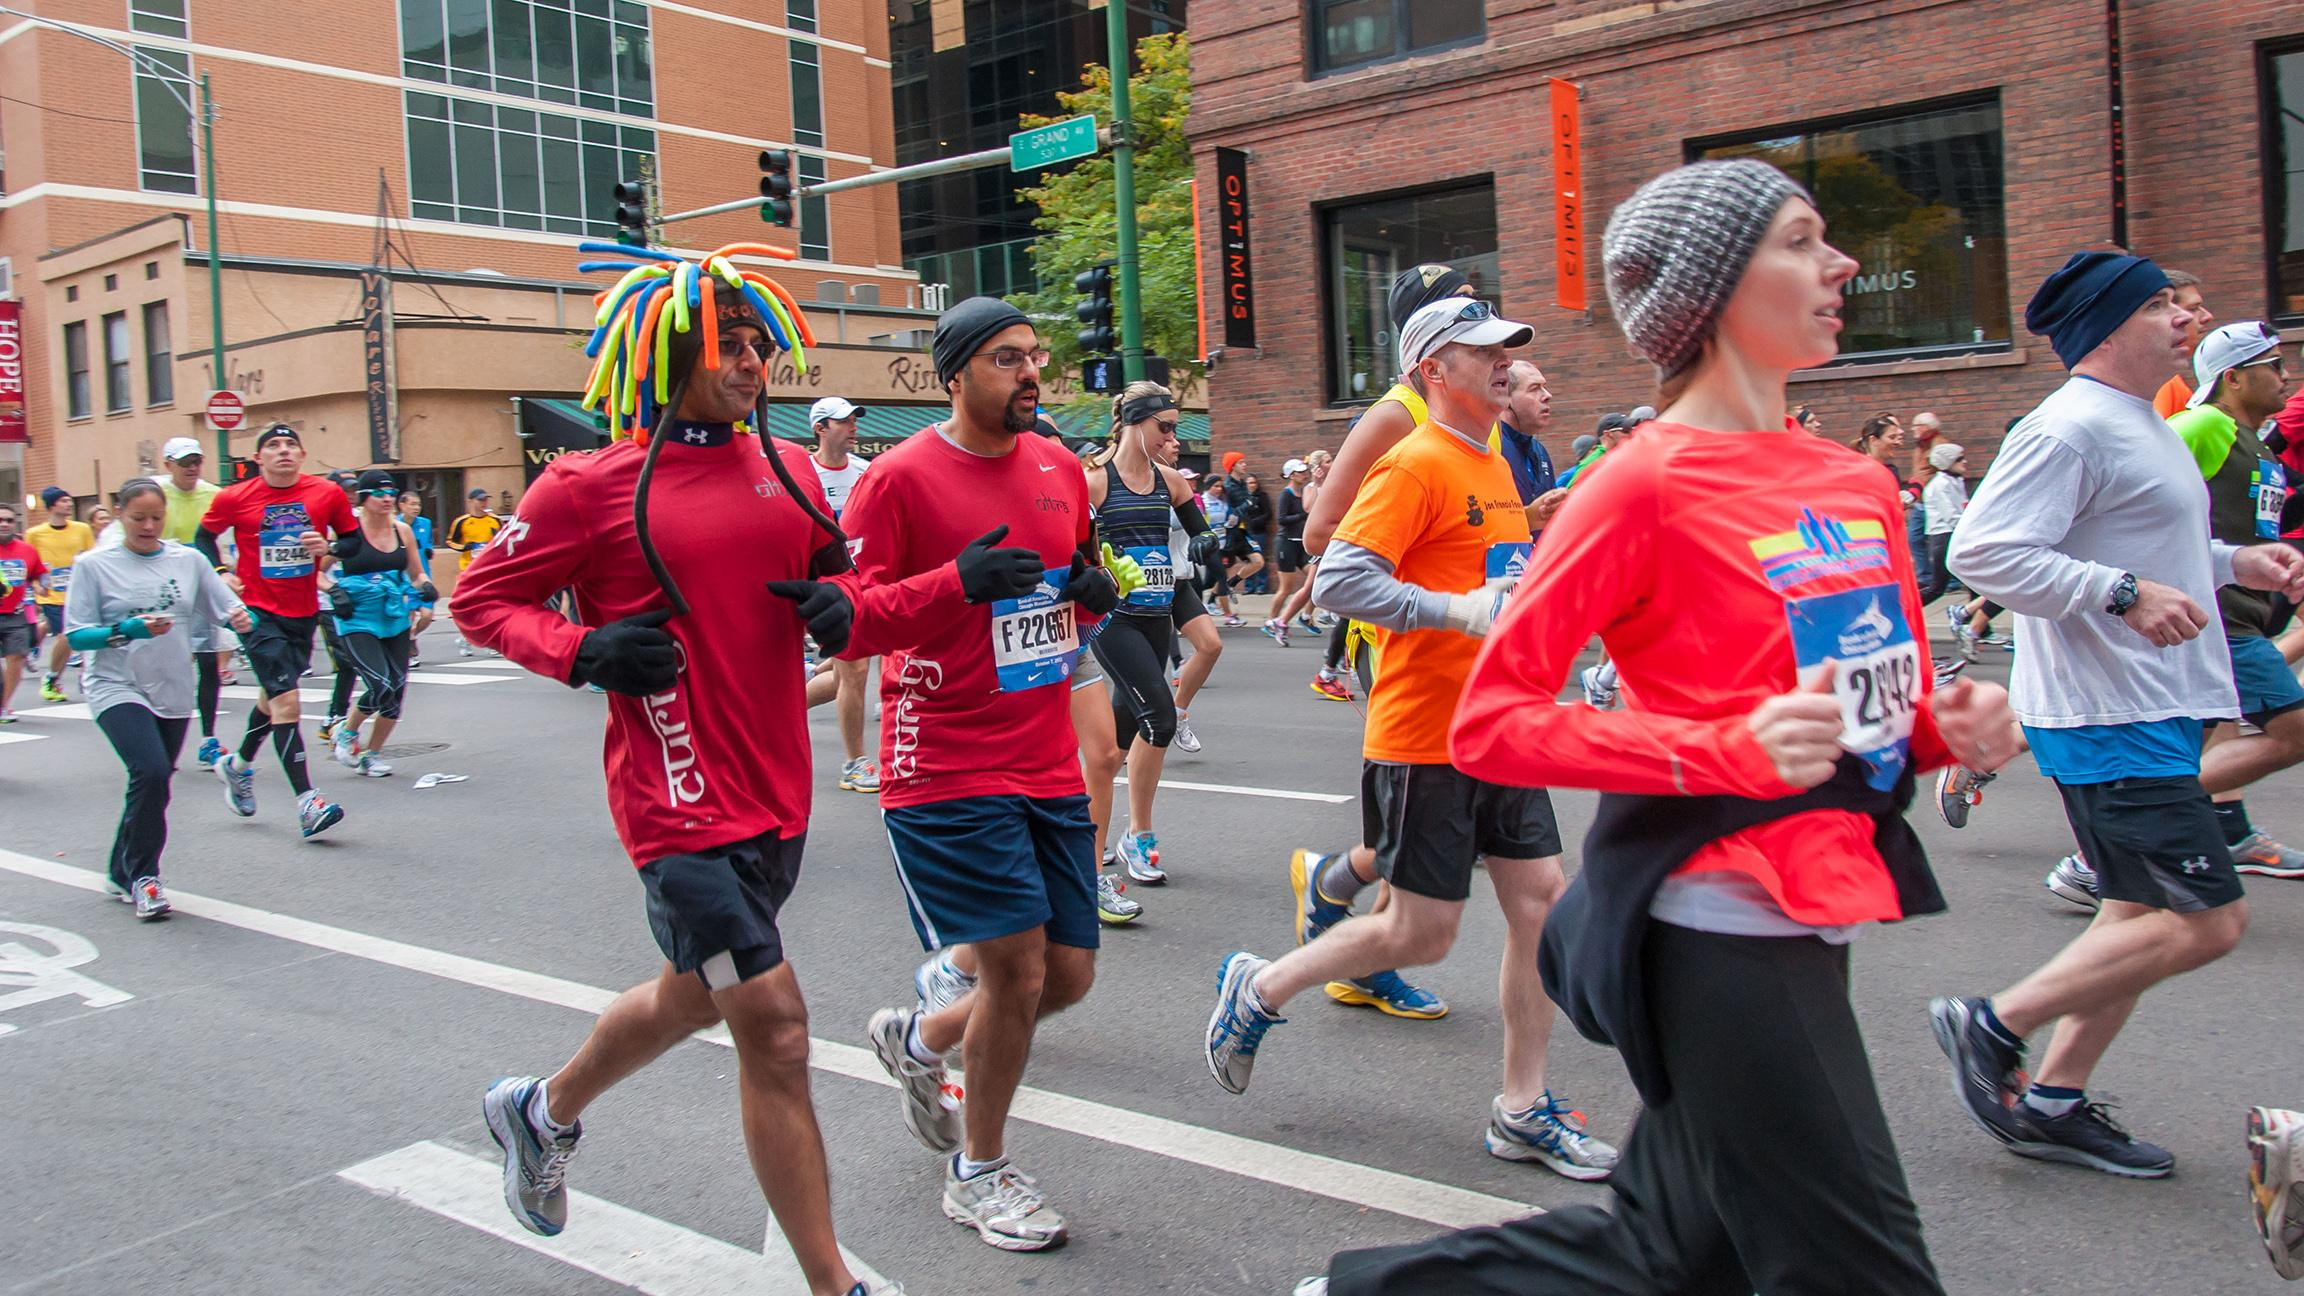 Show runners some love on Sunday for the 39th annual Chicago Marathon. (bradhoc / Flickr)